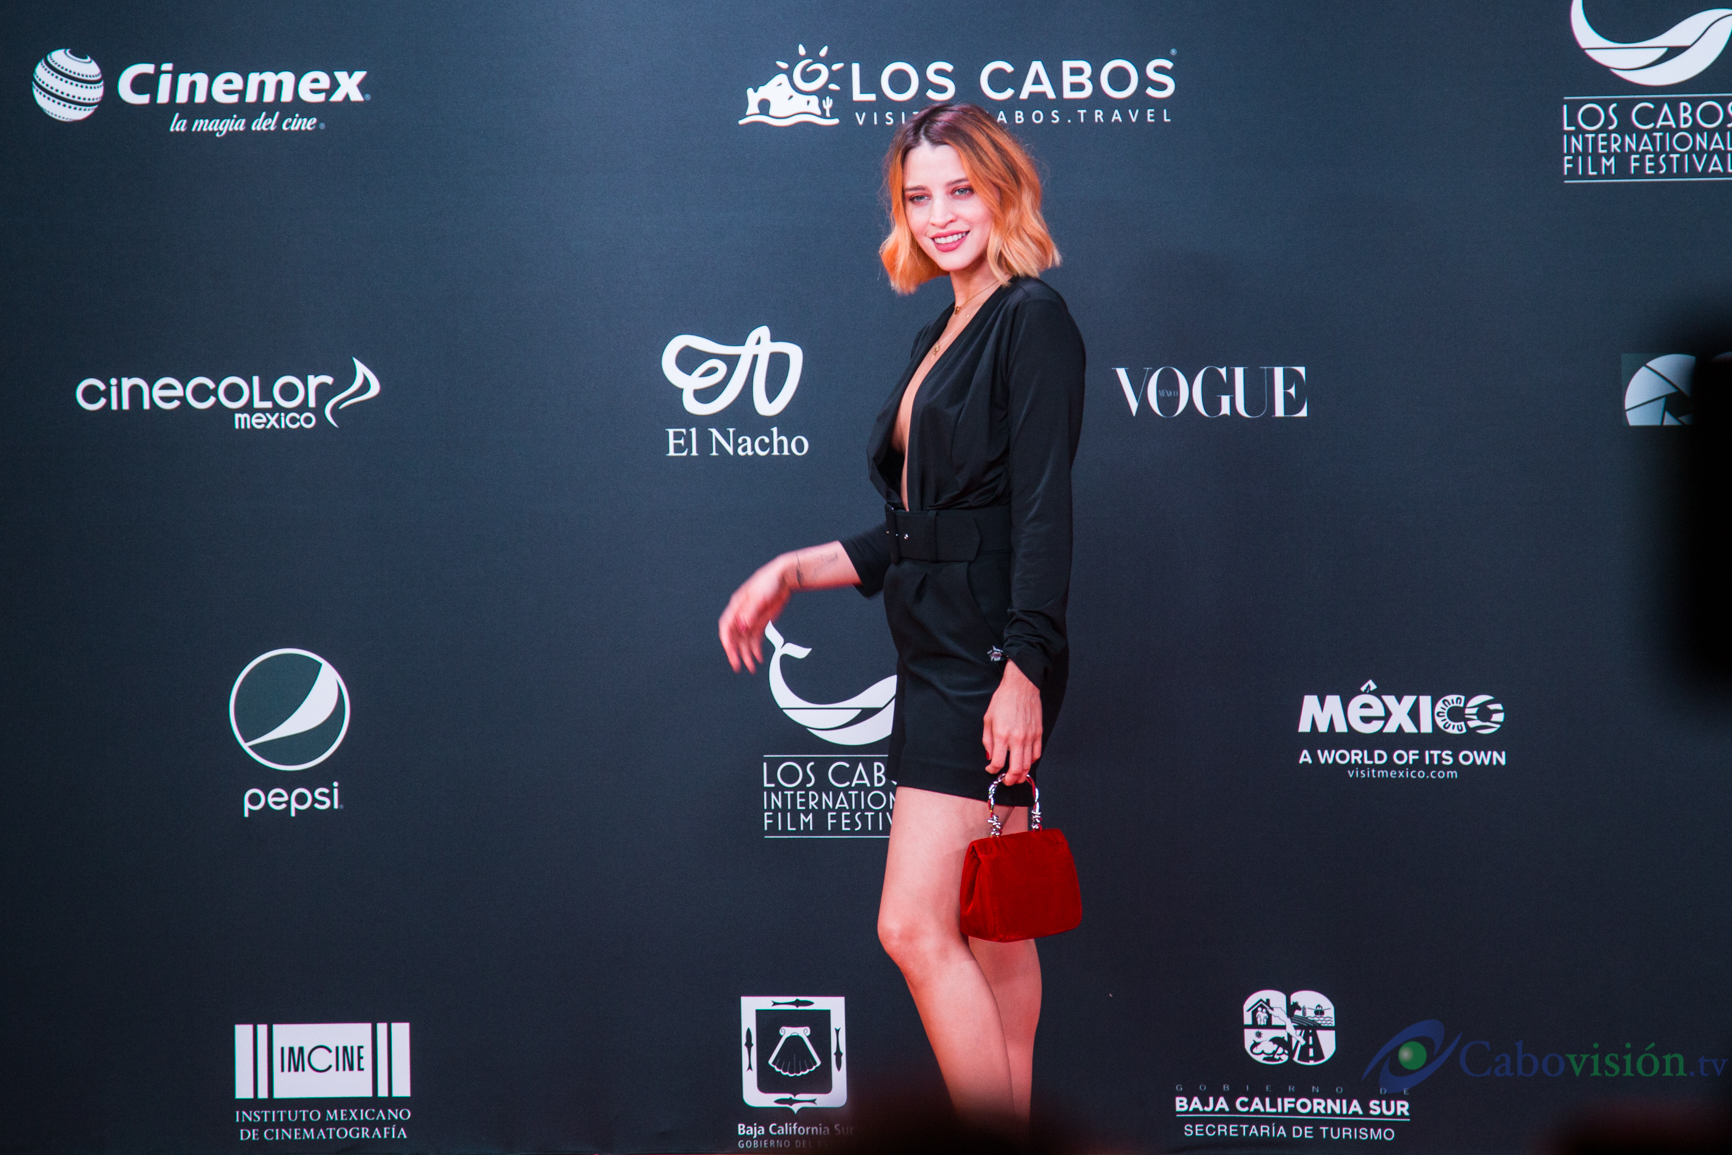 Los_Cabos_International_Film_Festival-7.jpg